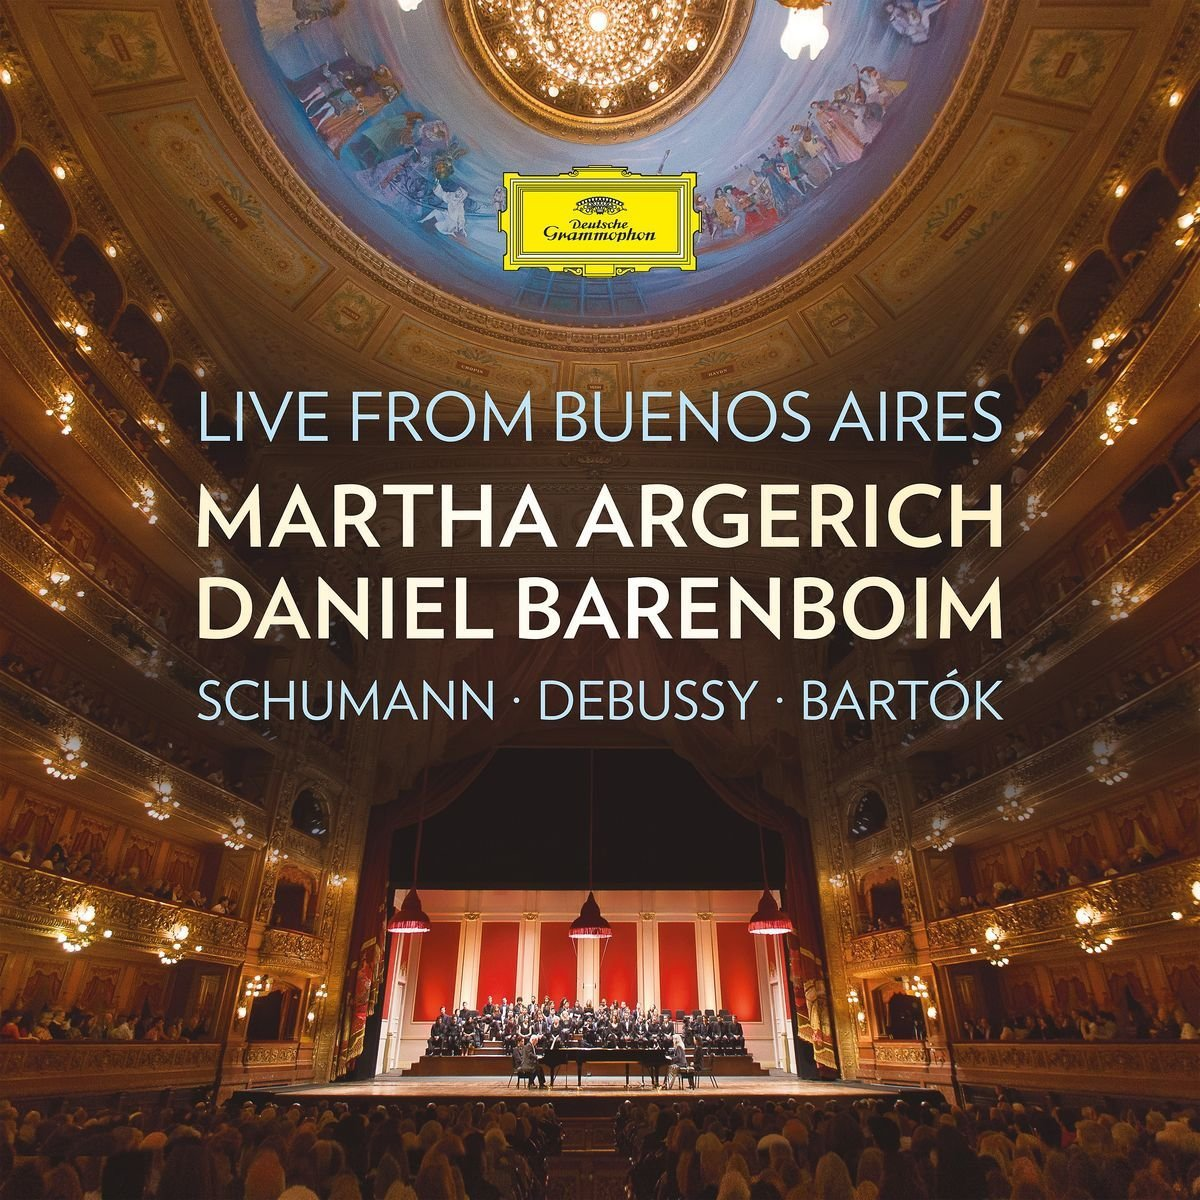 Live from Buenos Aires (Schumann; Debussy; Barktok)